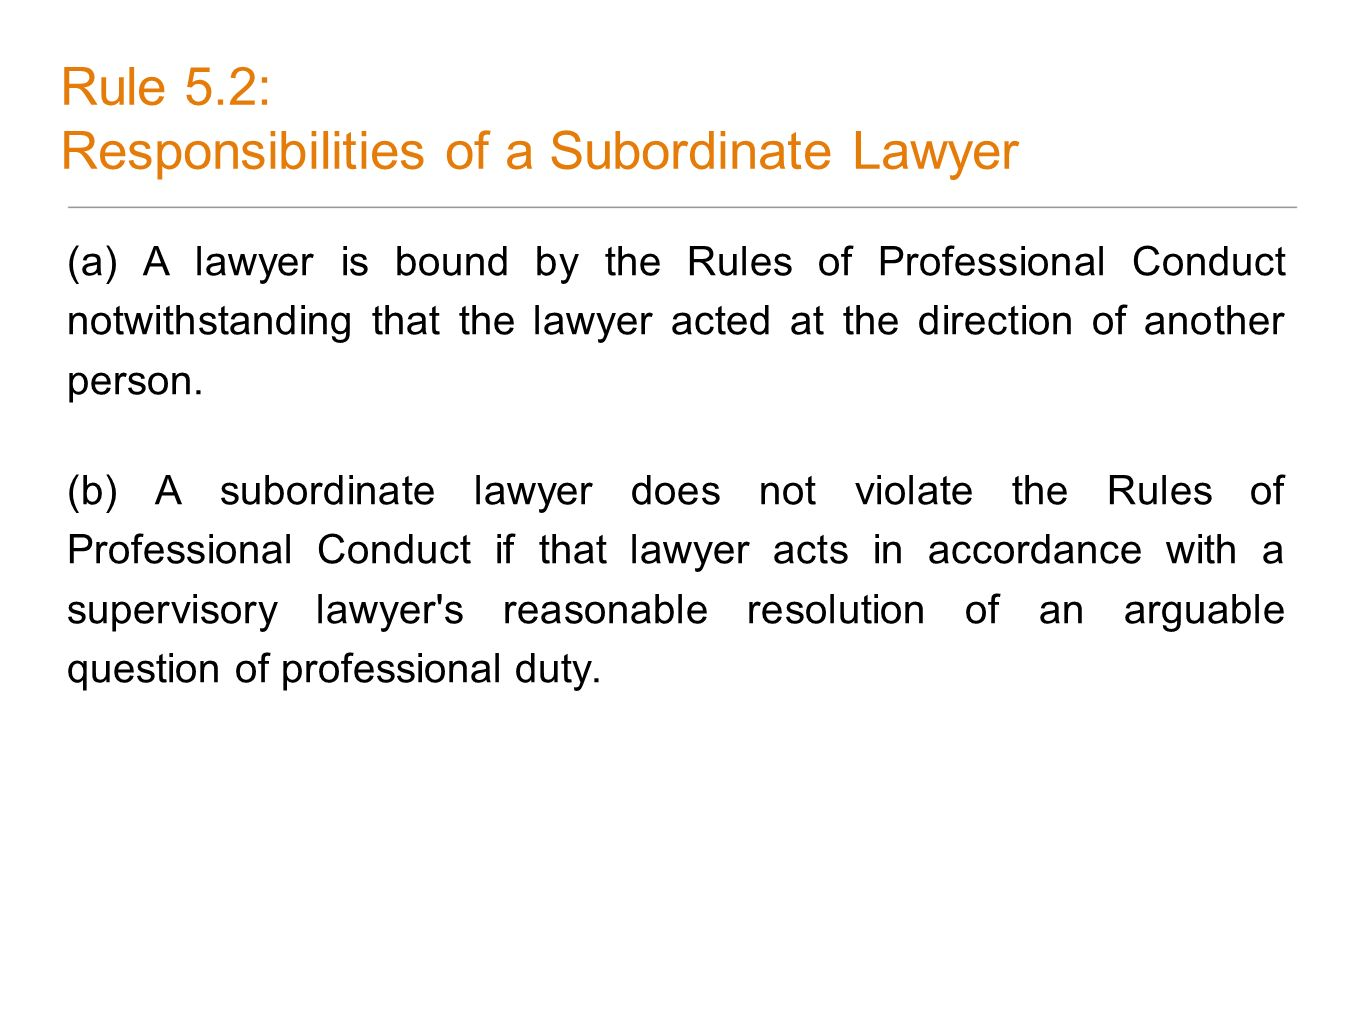 Rule 5.2: Responsibilities of a Subordinate Lawyer (a) A lawyer is bound by the Rules of Professional Conduct notwithstanding that the lawyer acted at